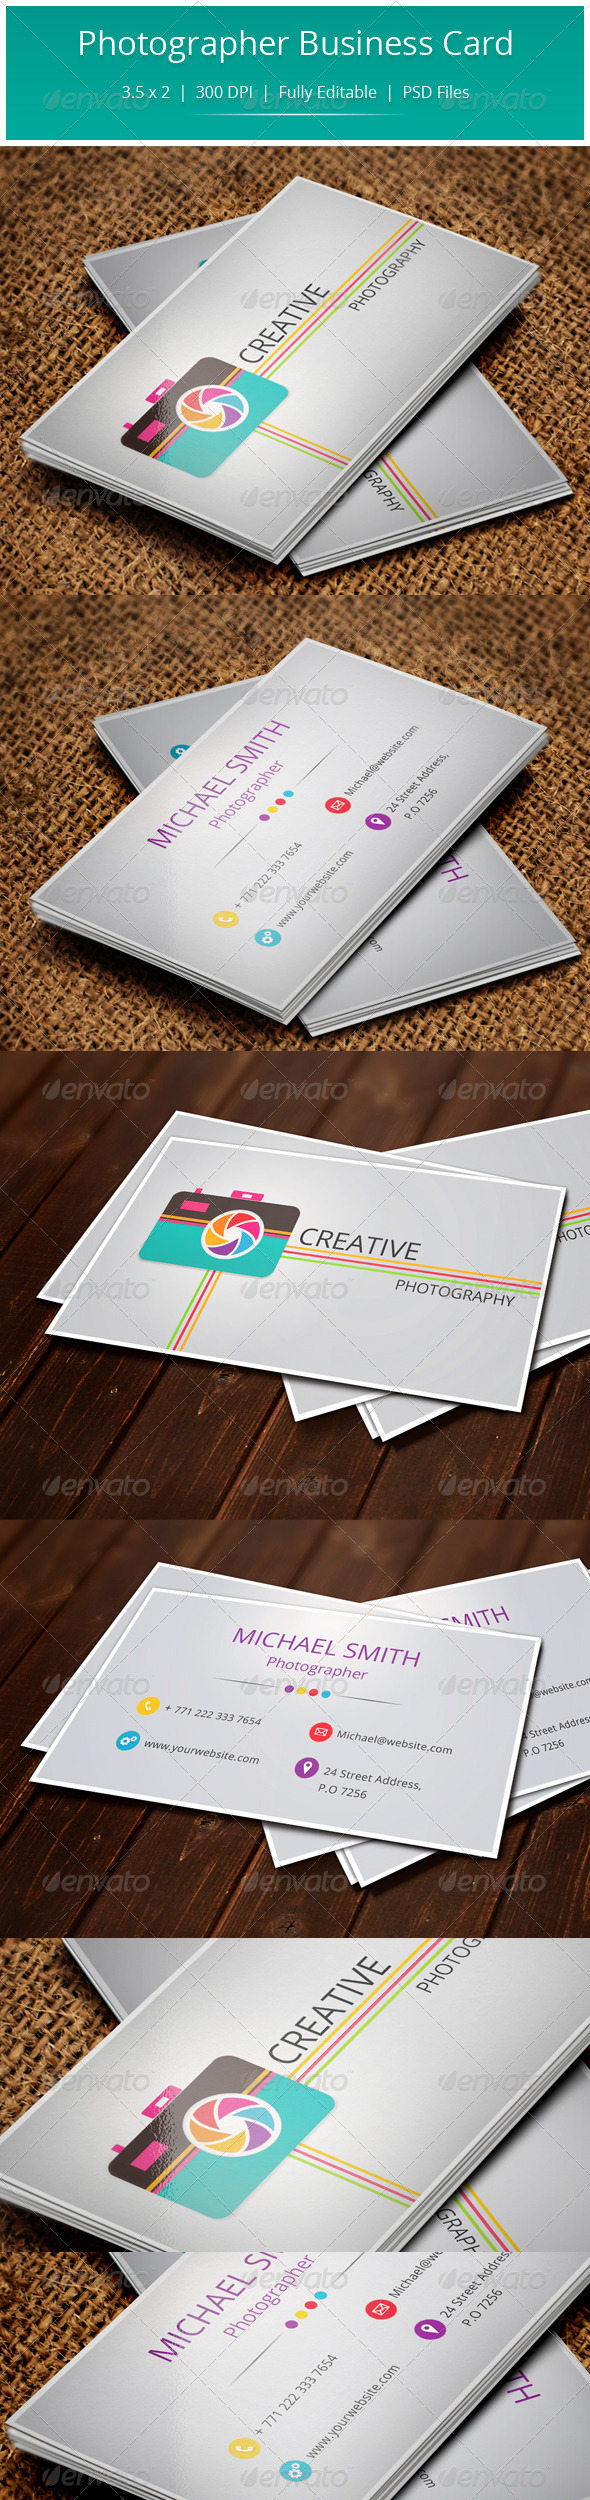 GraphicRiver Photographer Business Card 5610012